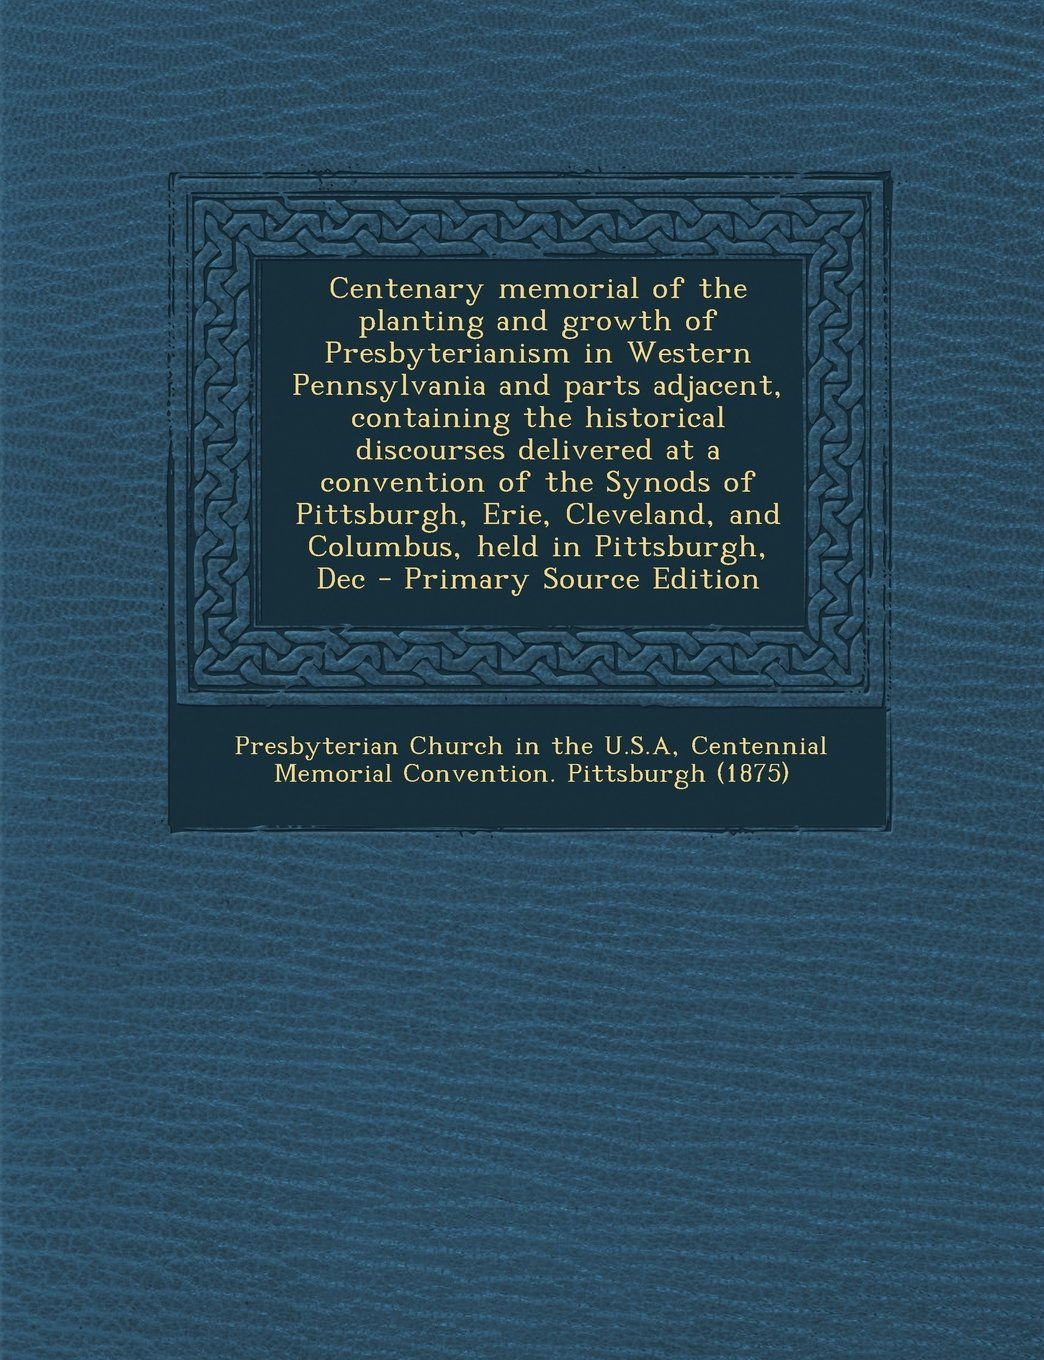 Centenary memorial of the planting and growth of Presbyterianism in Western Pennsylvania and parts adjacent, containing the historical discourses ... and Columbus, held in Pittsburgh, Dec pdf